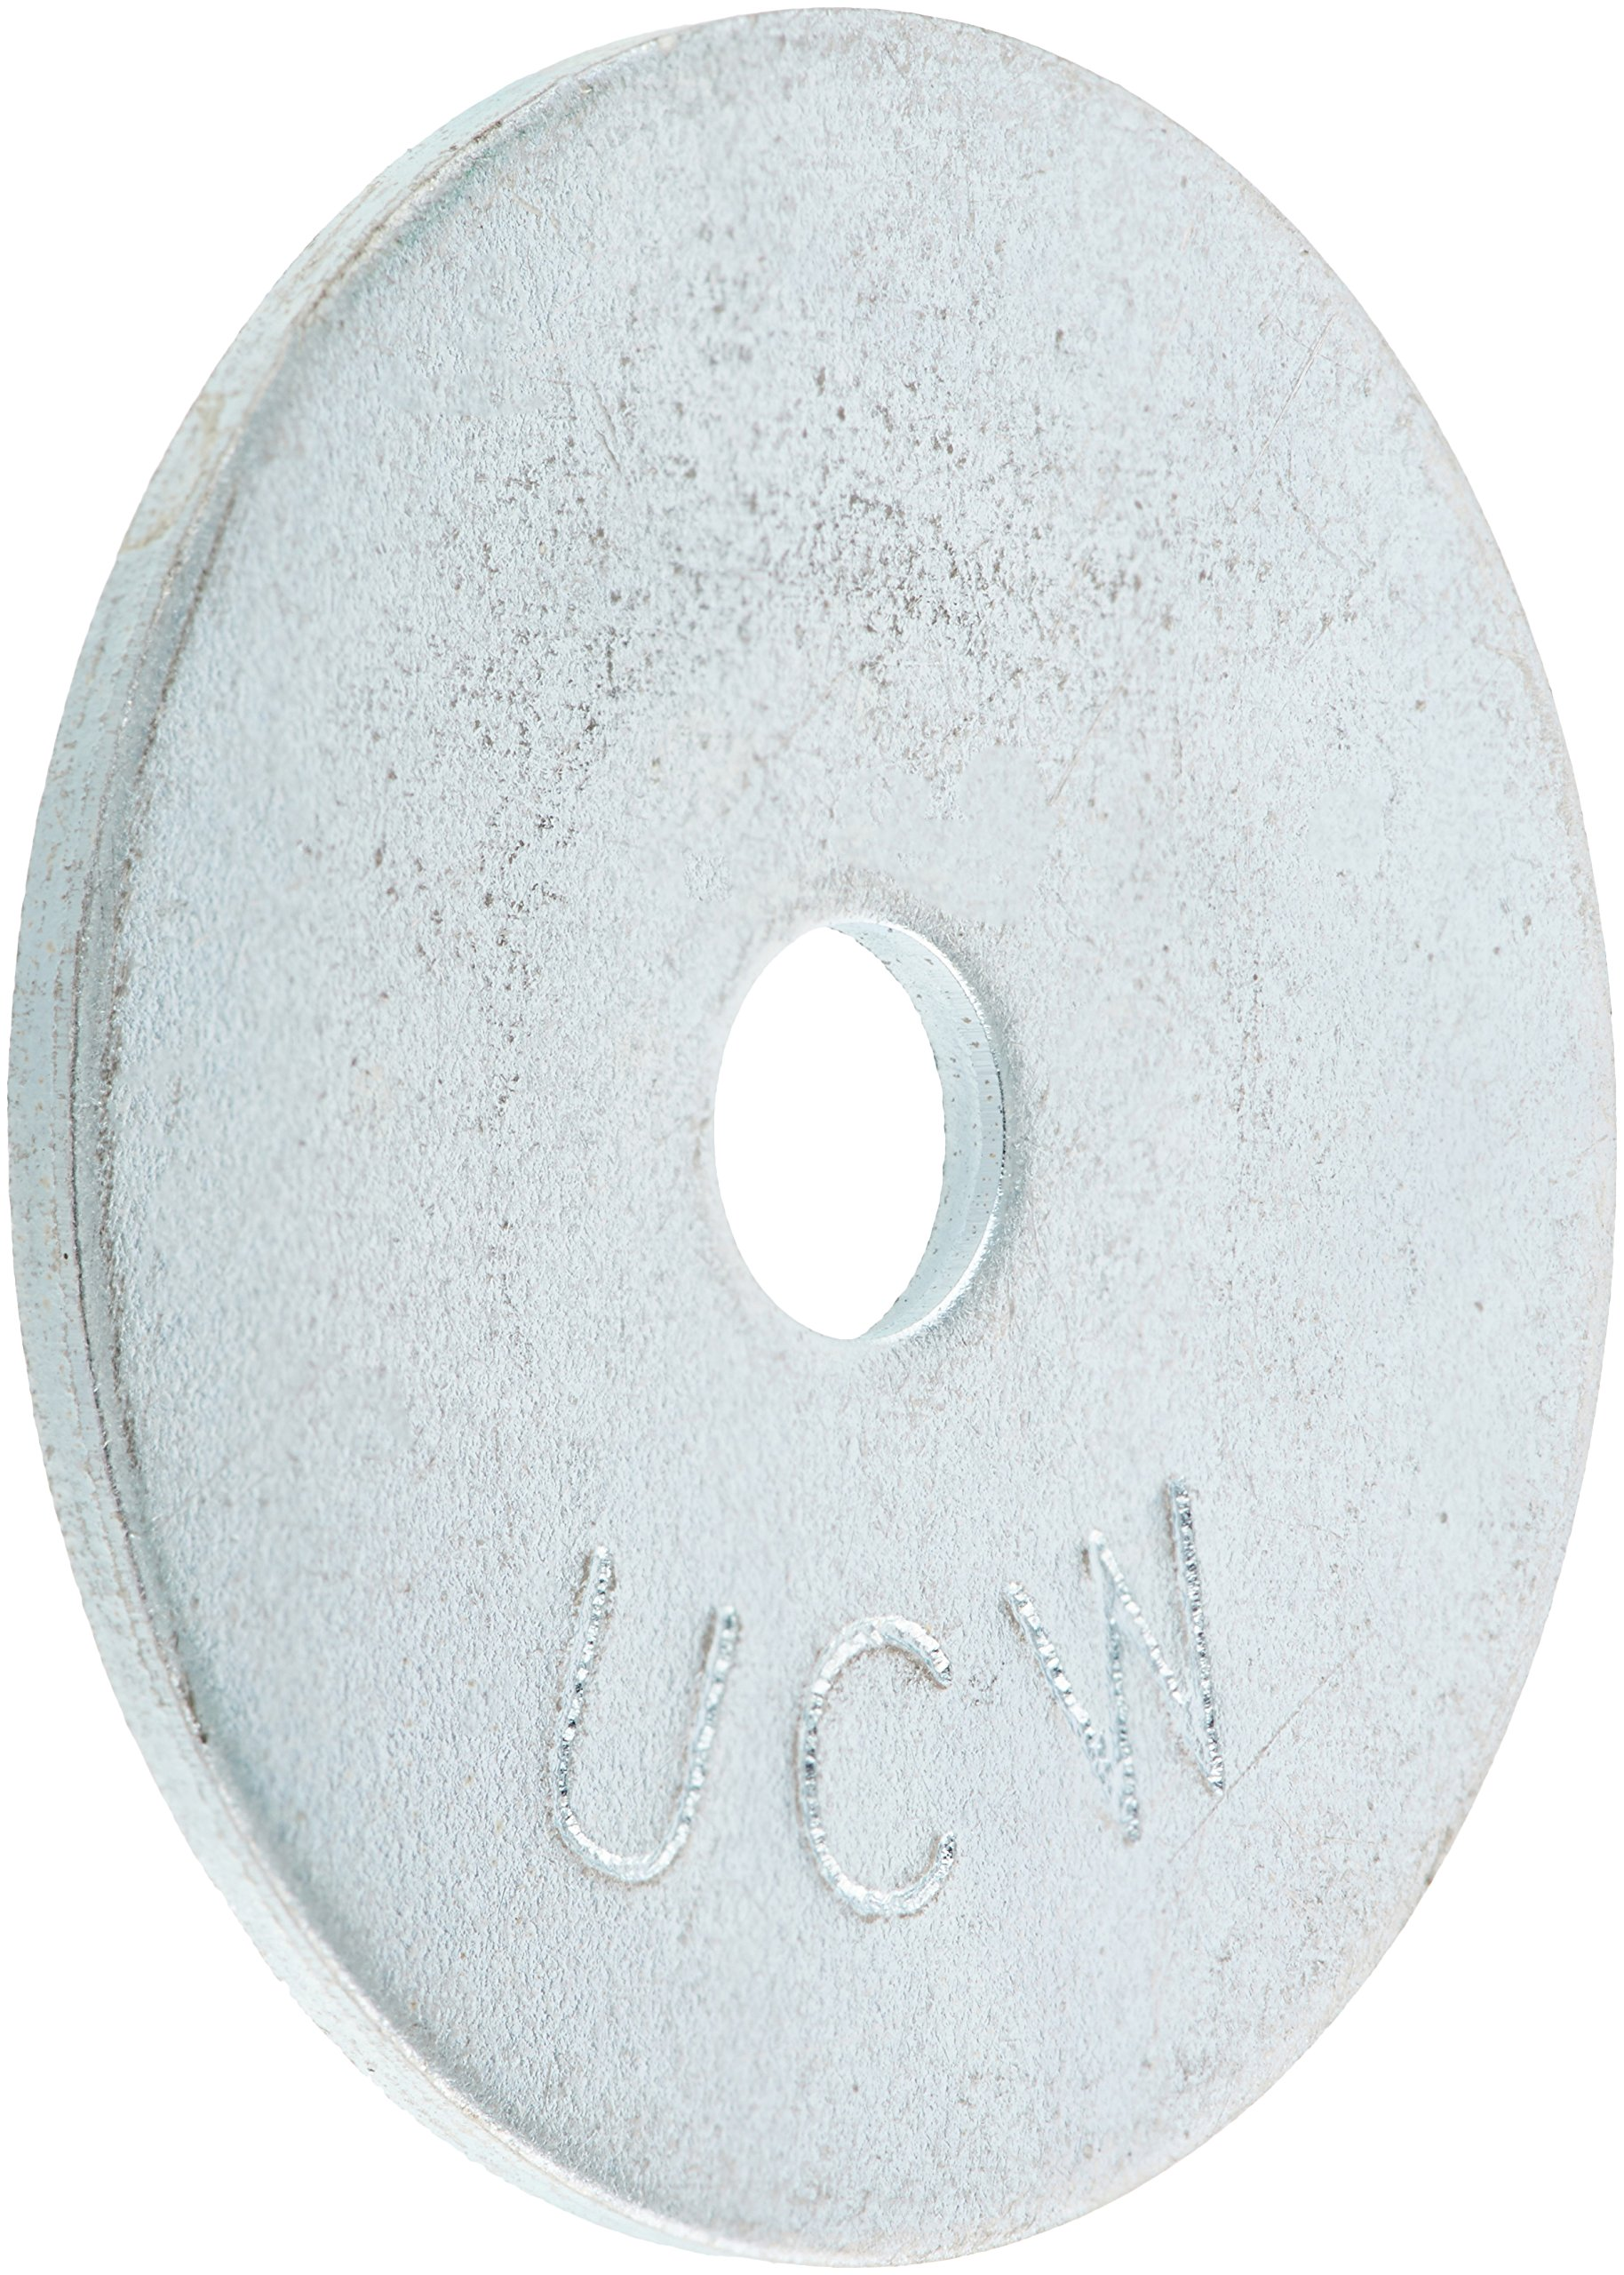 The Hillman Group 290006 Fender Zinc Washers, 3/16-Inch x 1-1/4-Inch, 100-Pack